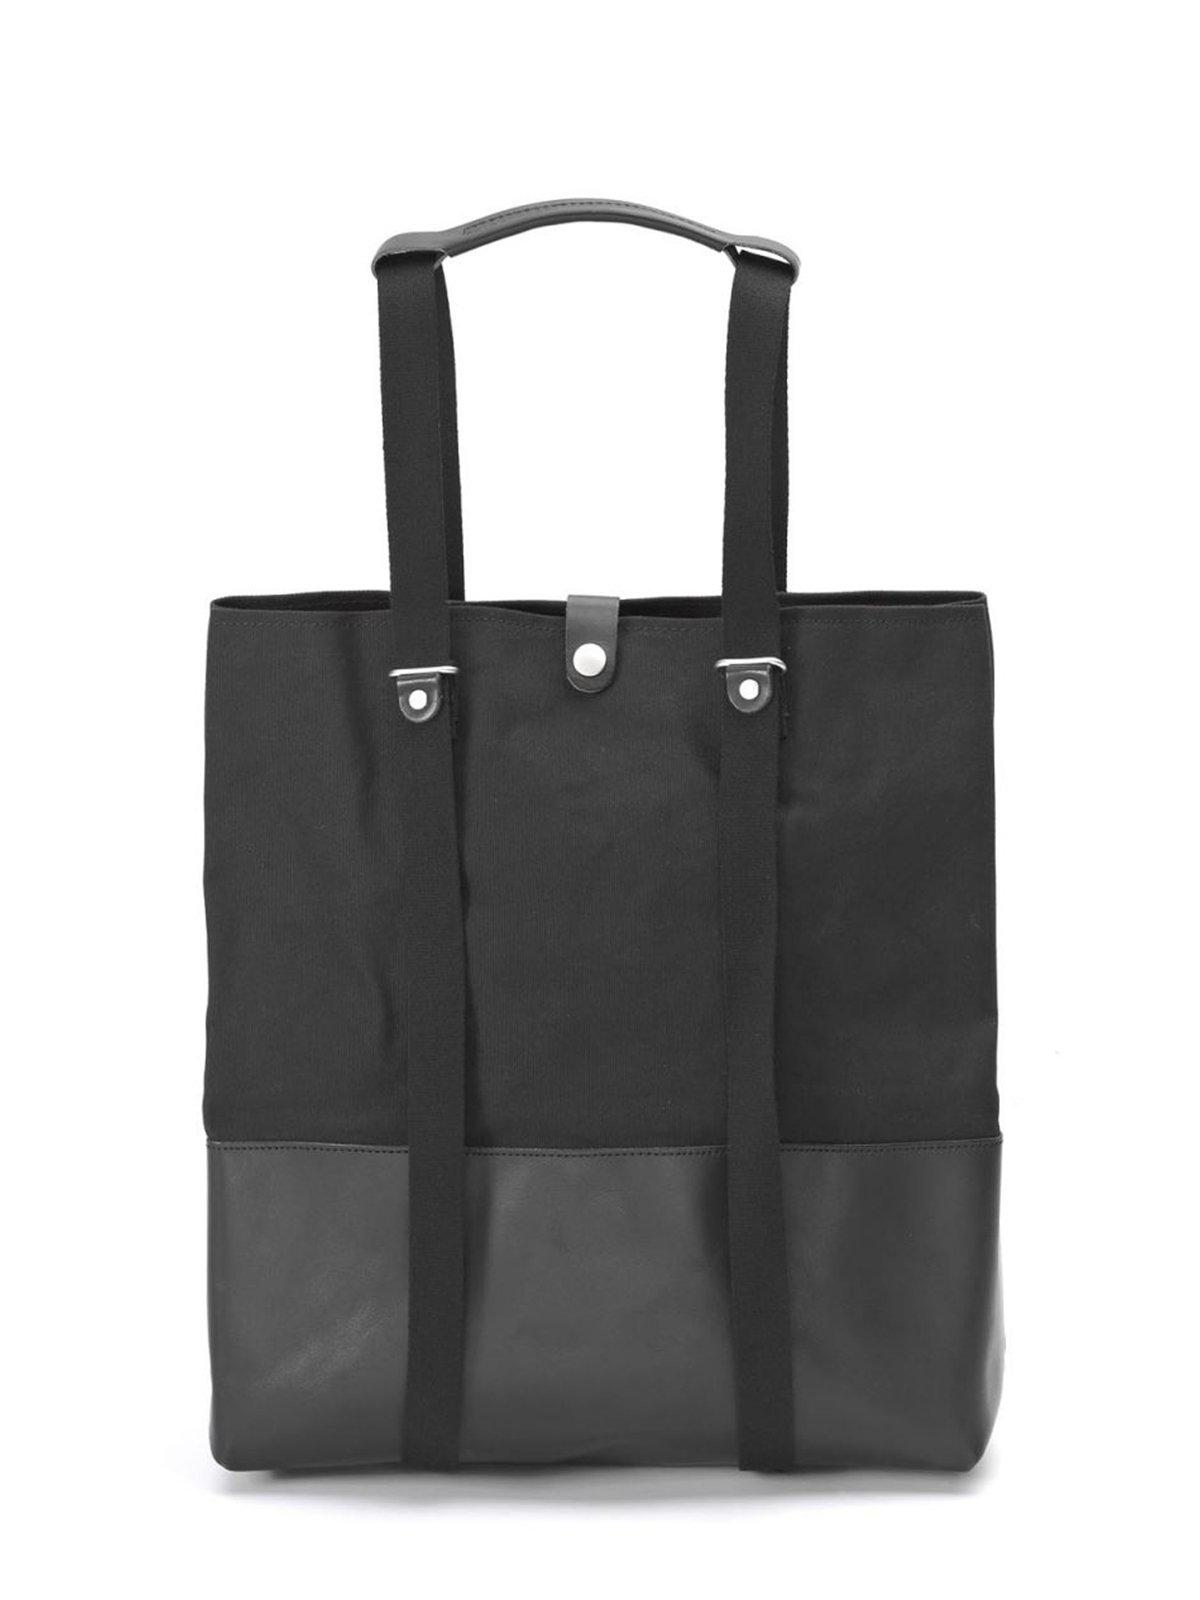 Qwstion Shopper Black Leather Canvas - MORE by Morello Indonesia